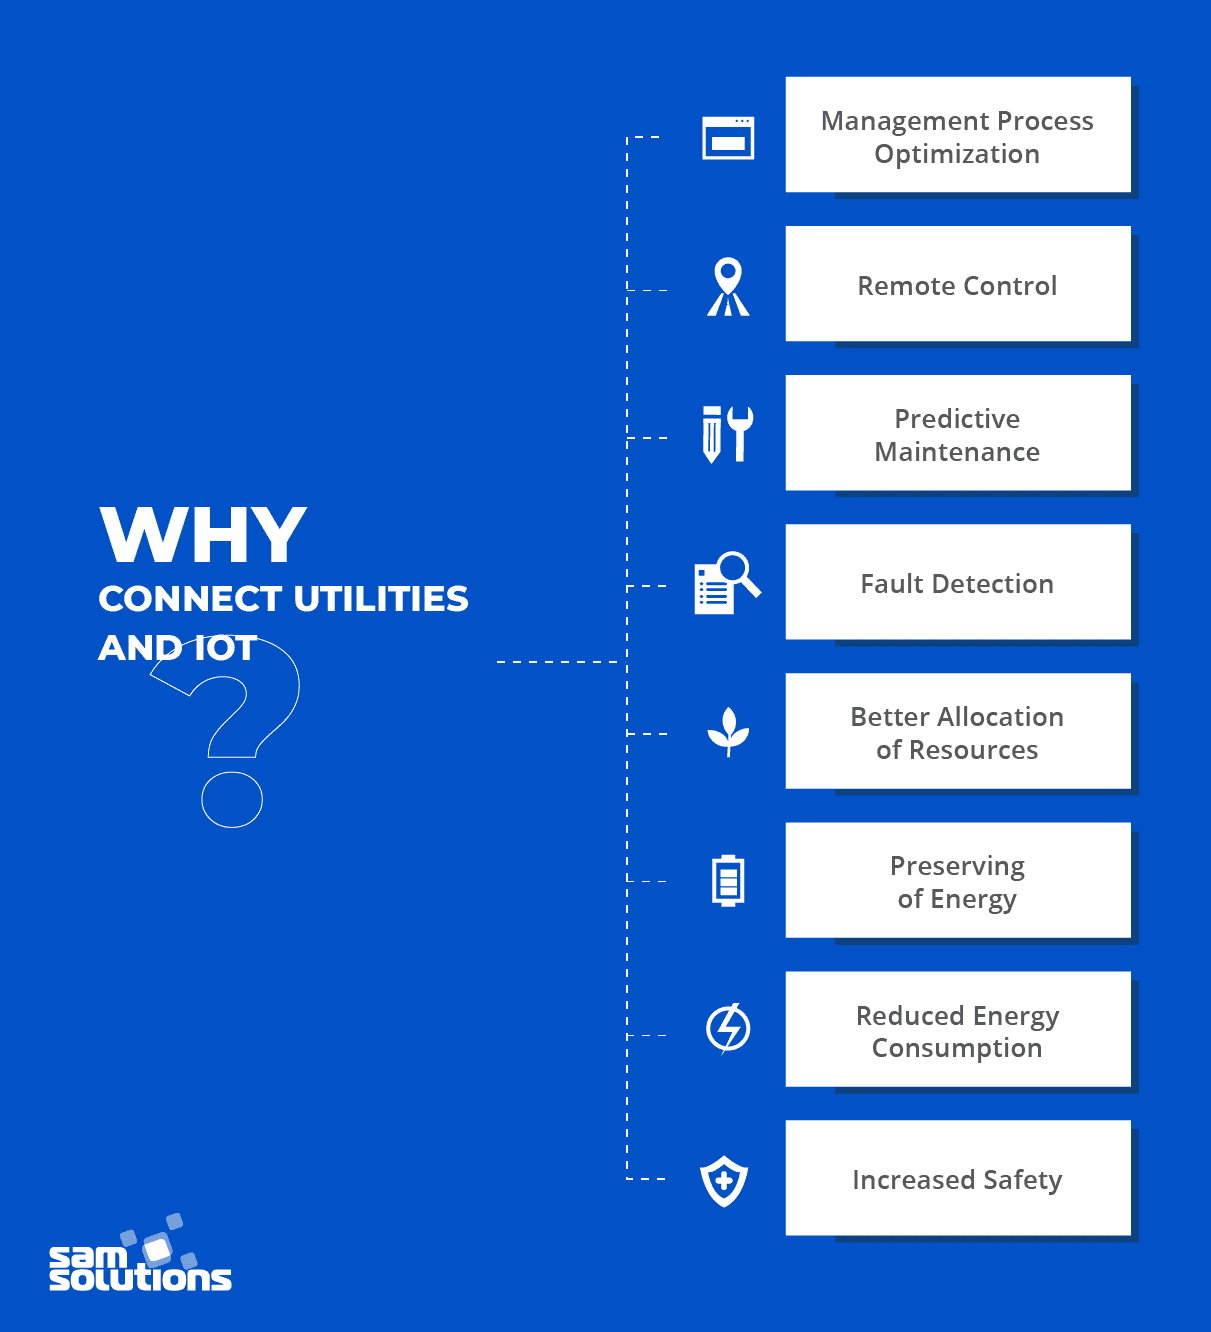 Why-IoT-and-Utilities